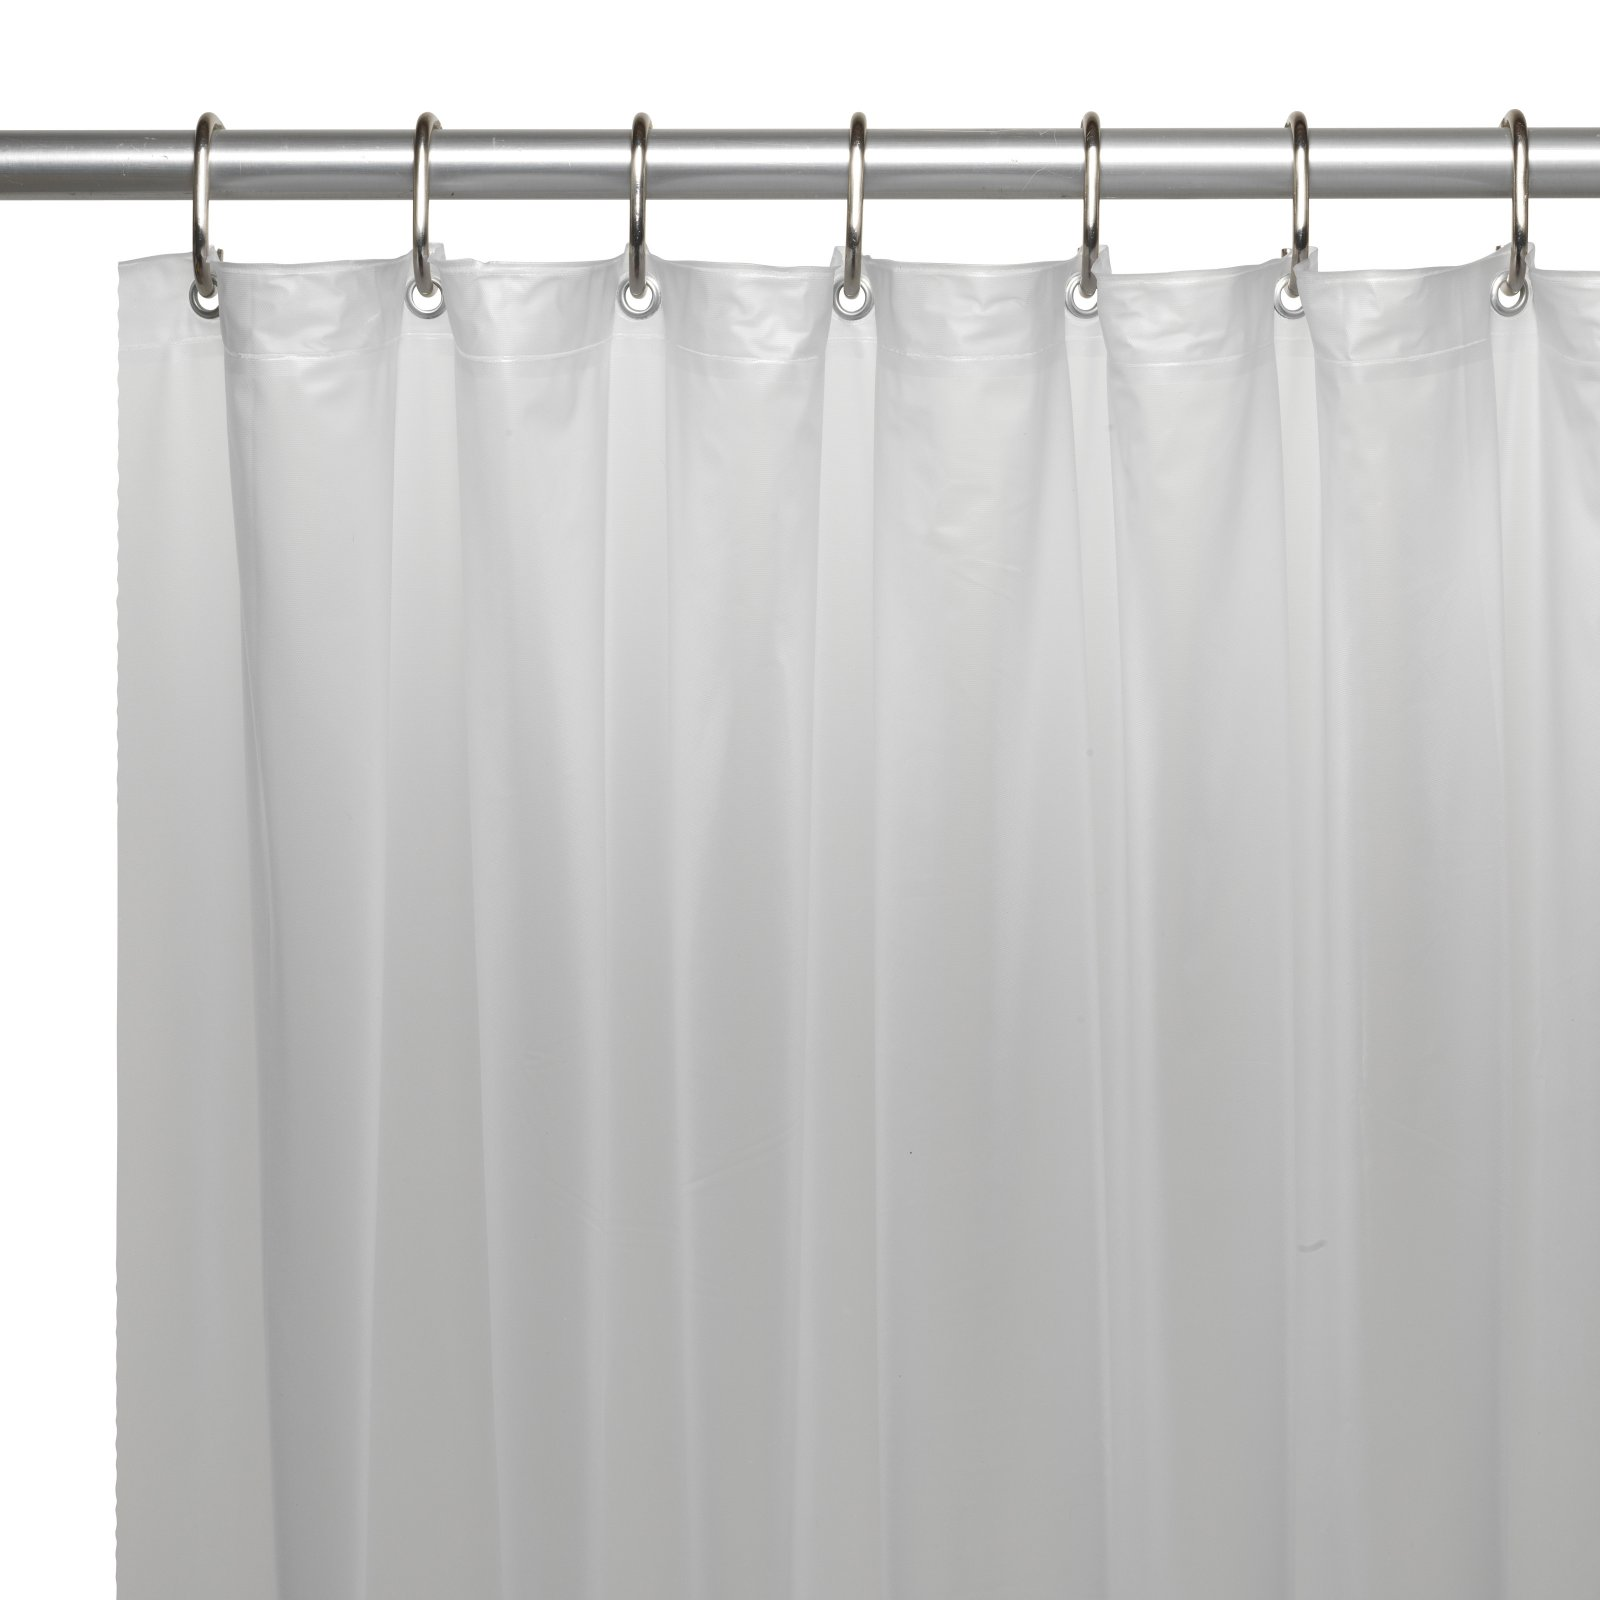 Extra Long 72 X 78 Mildew Resistant 10 Gauge Vinyl Shower Curtain Liner W Metal Grommets And Reinforced Mesh Header In Frosty Clear